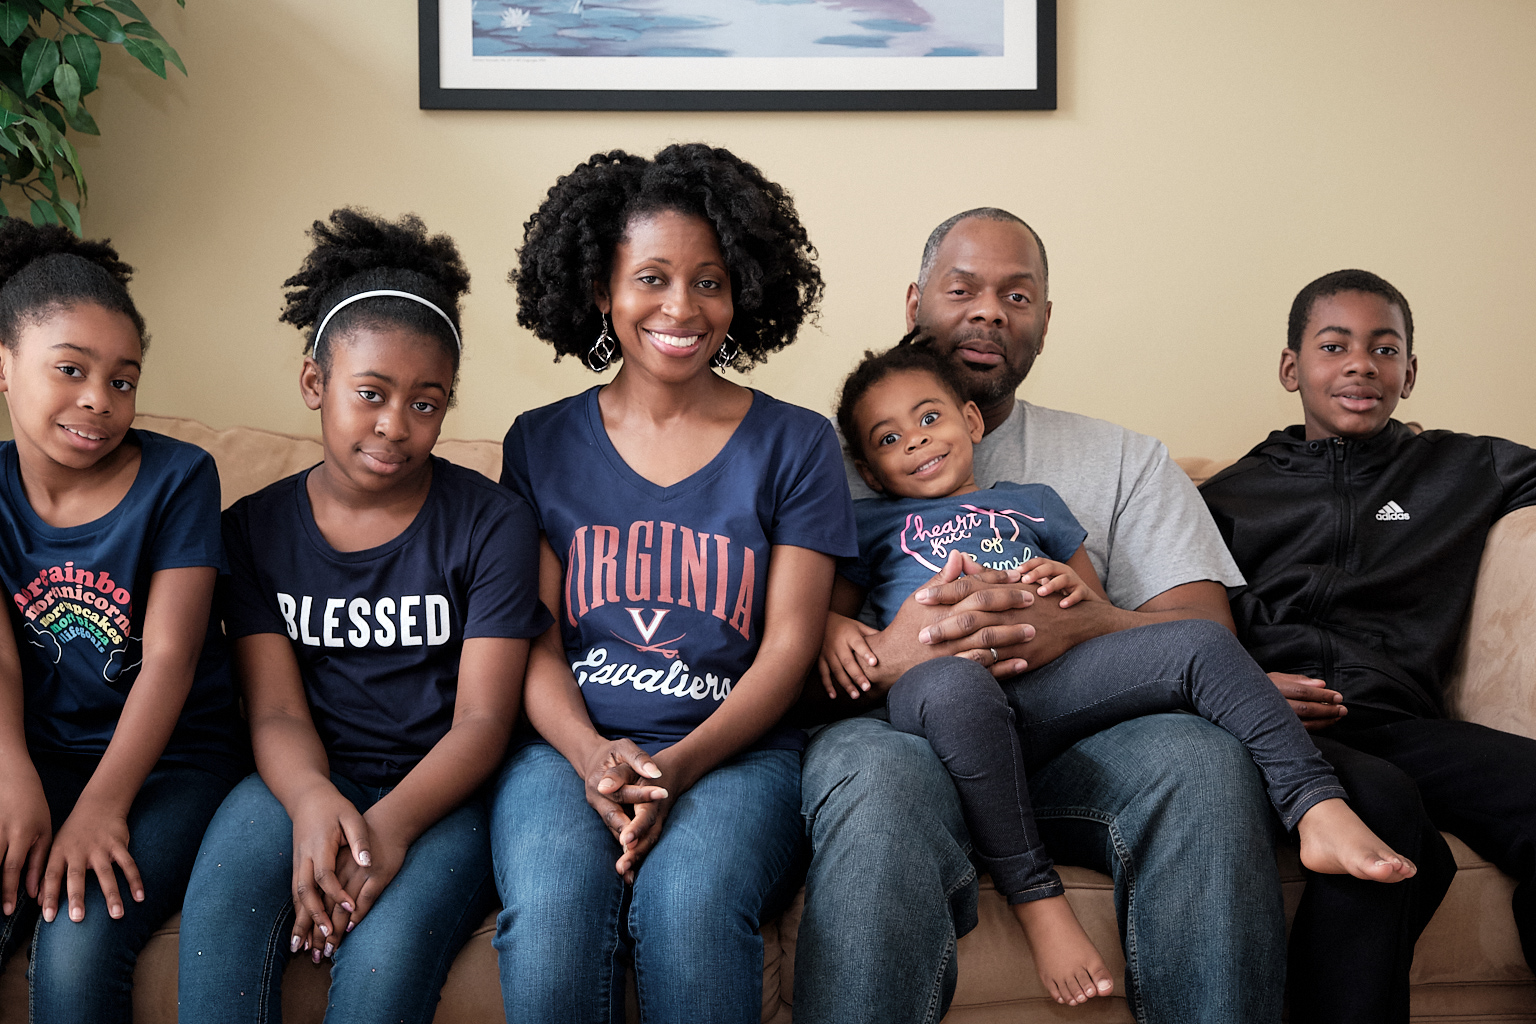 Lenzy_Ruffin_Photograph_Family_Lifestye_2019-04-20-092.jpg